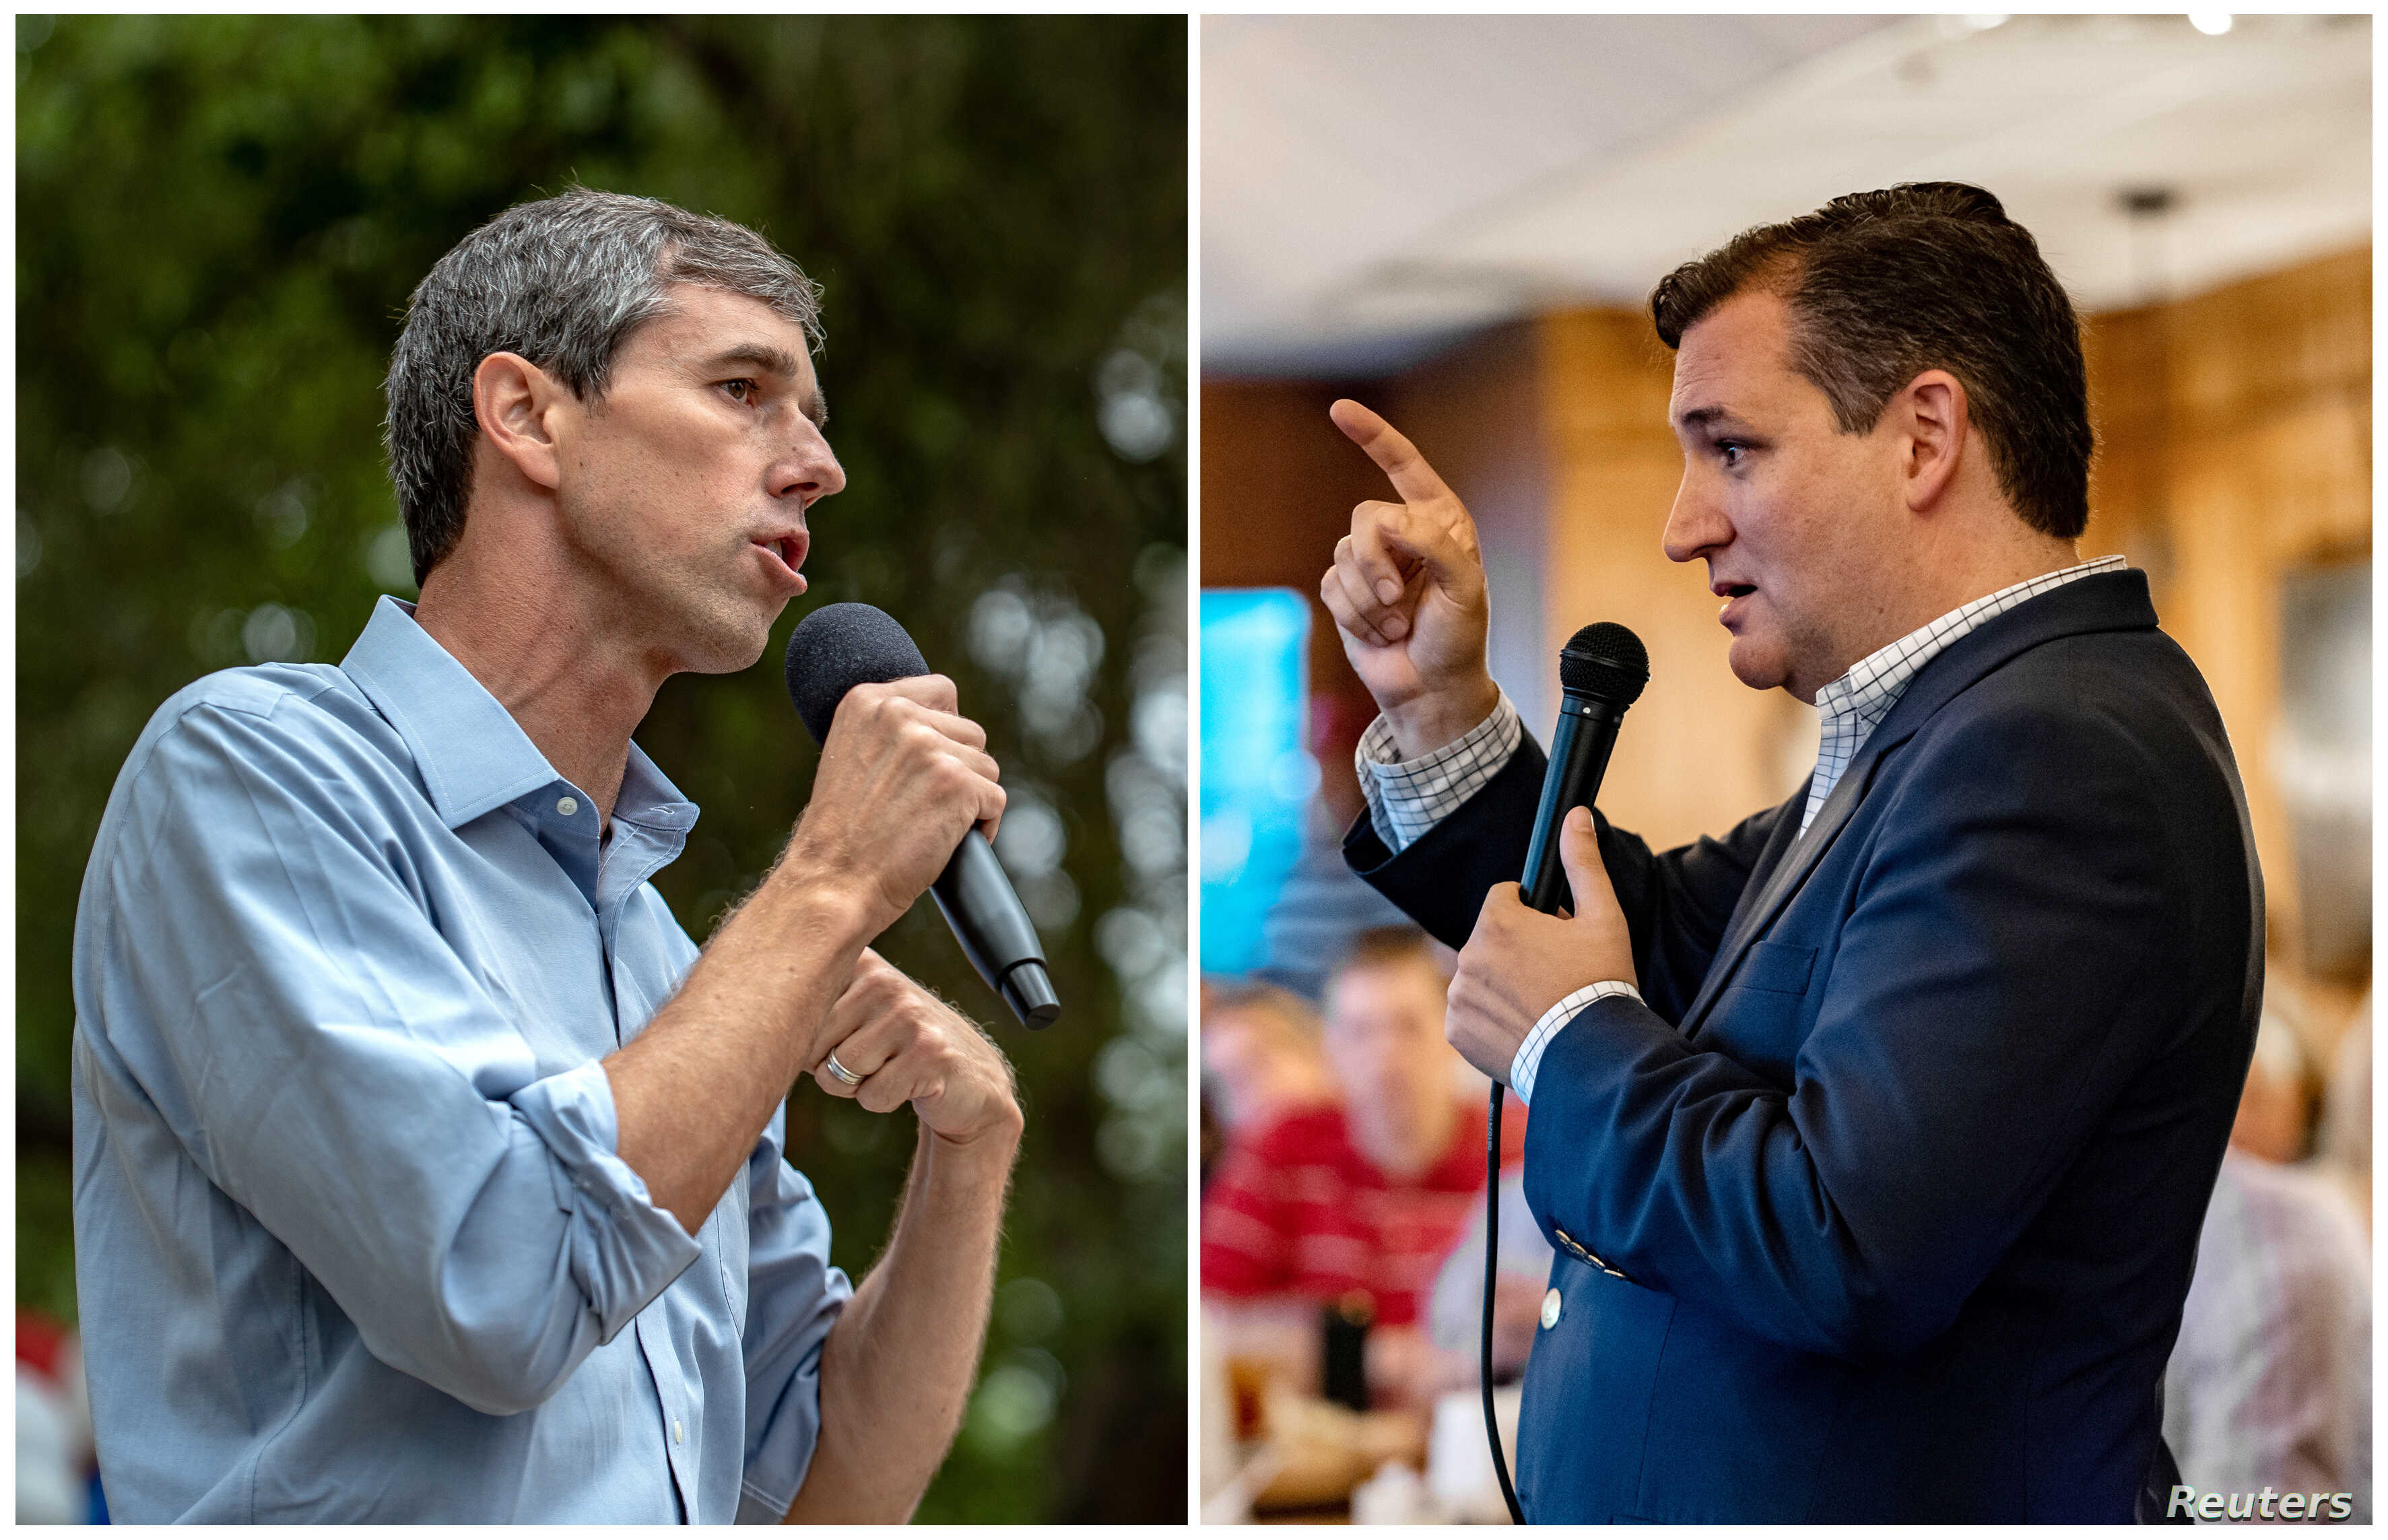 FILE - A combination photo shows U.S. Rep. Beto O'Rourke, left, and U.S. Senator Ted Cruz, right, speaking to supporters in Del Rio, Texas, Sept. 22, 2018 and in Columbus, Texas, Sept. 15, 2018 respectively.